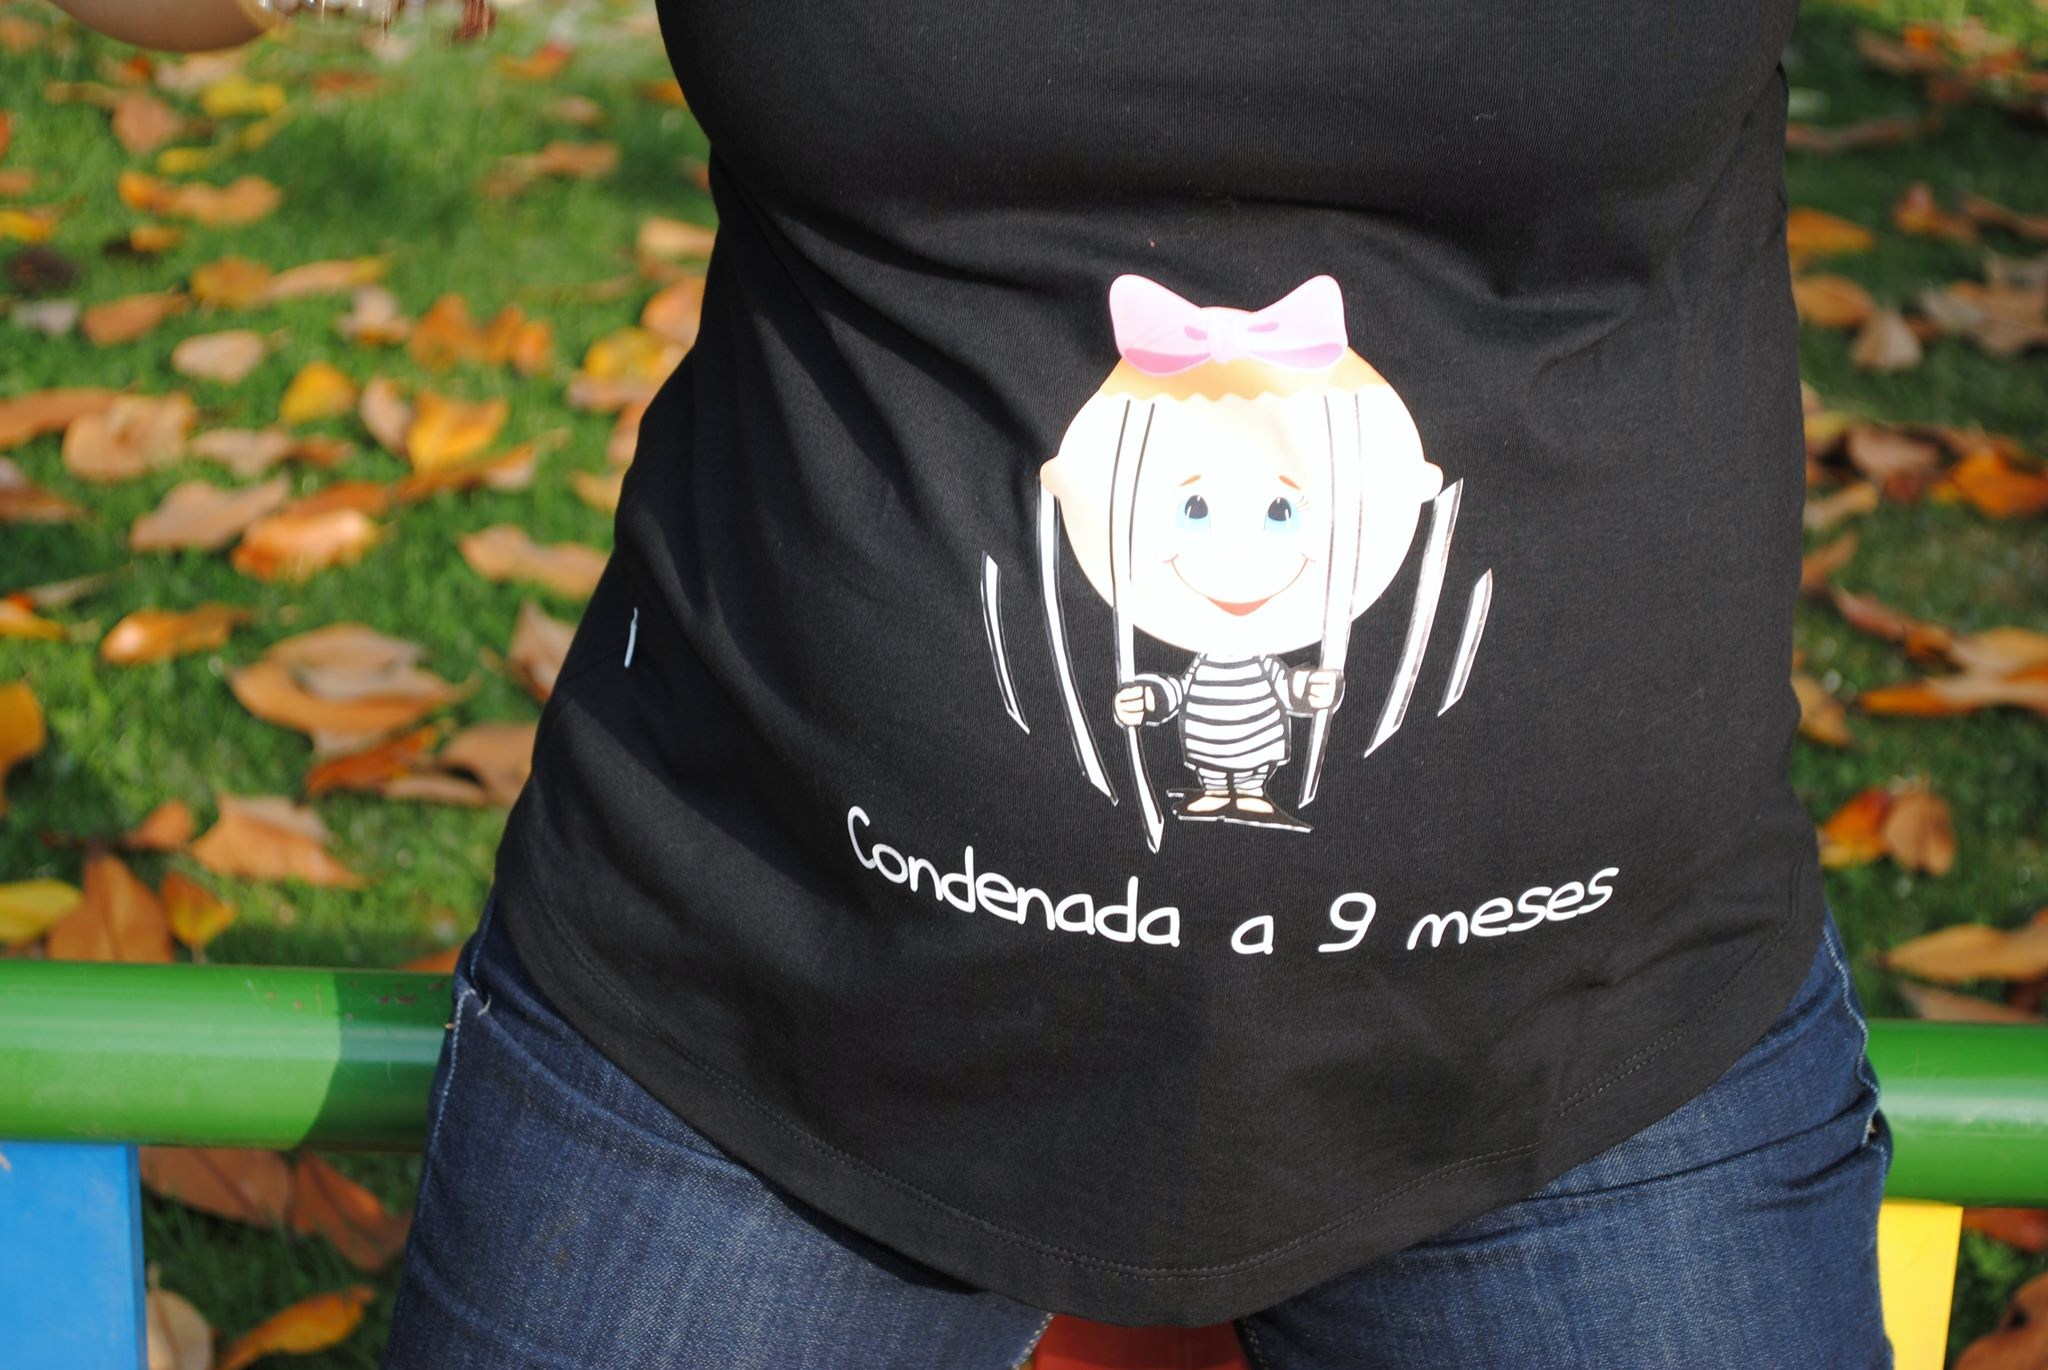 camisetas-embarazadas-divertidas (1)